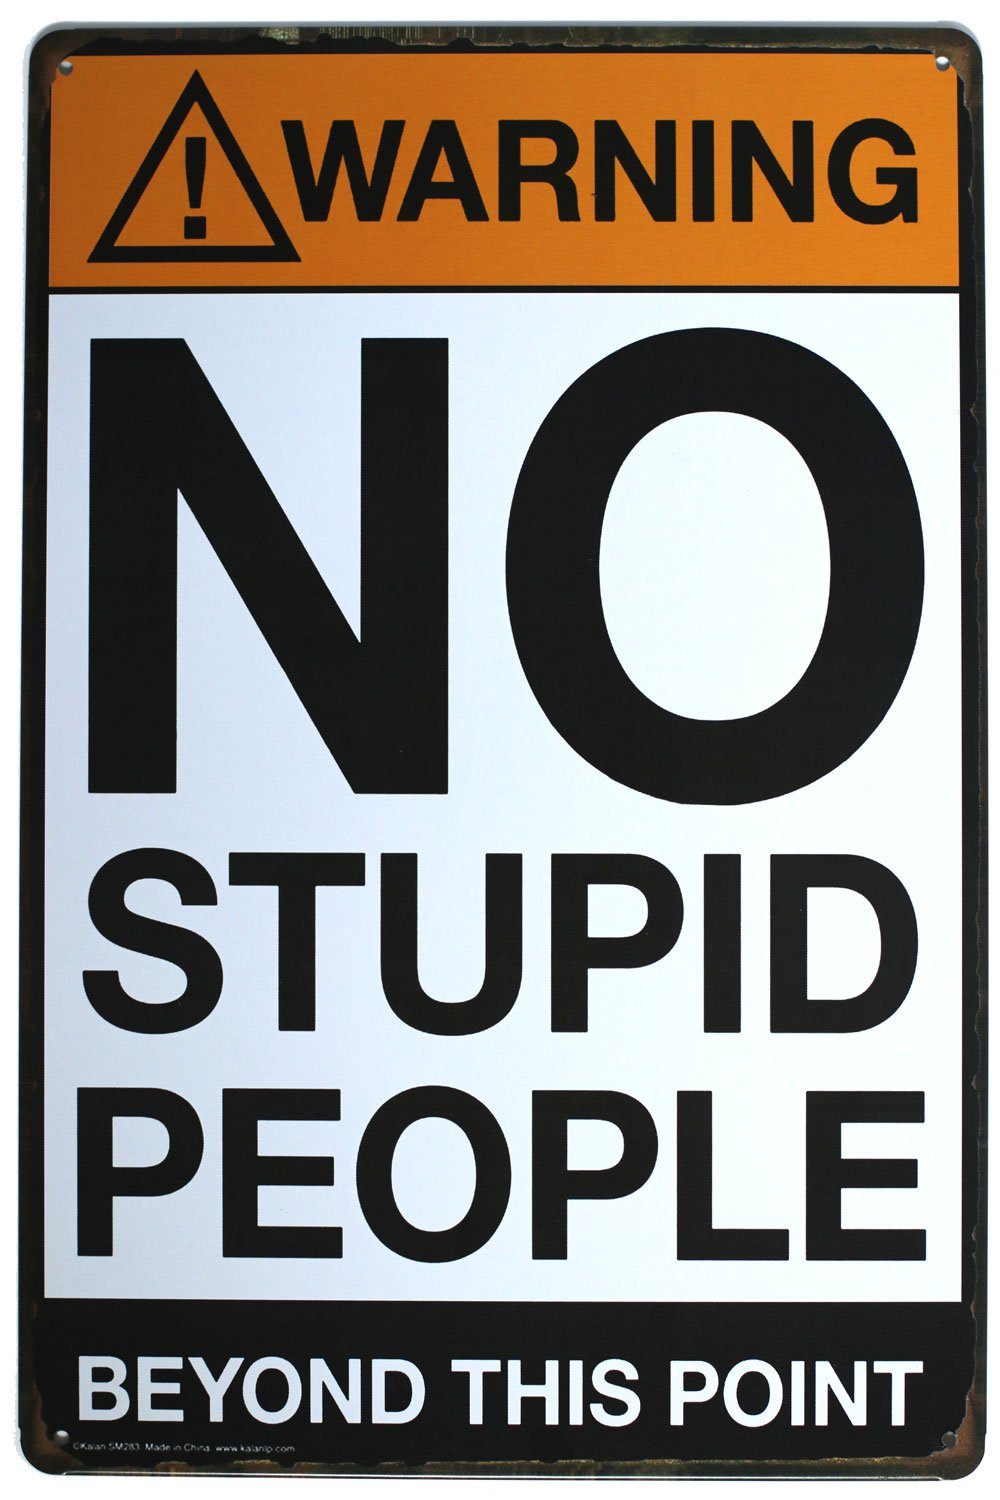 Warning No Stupid People Beyond This Point Tin Sign. Metal Tin Sign, Wall Decorative Sign, Size 8 x 12 Size 8 x 12 CHINA